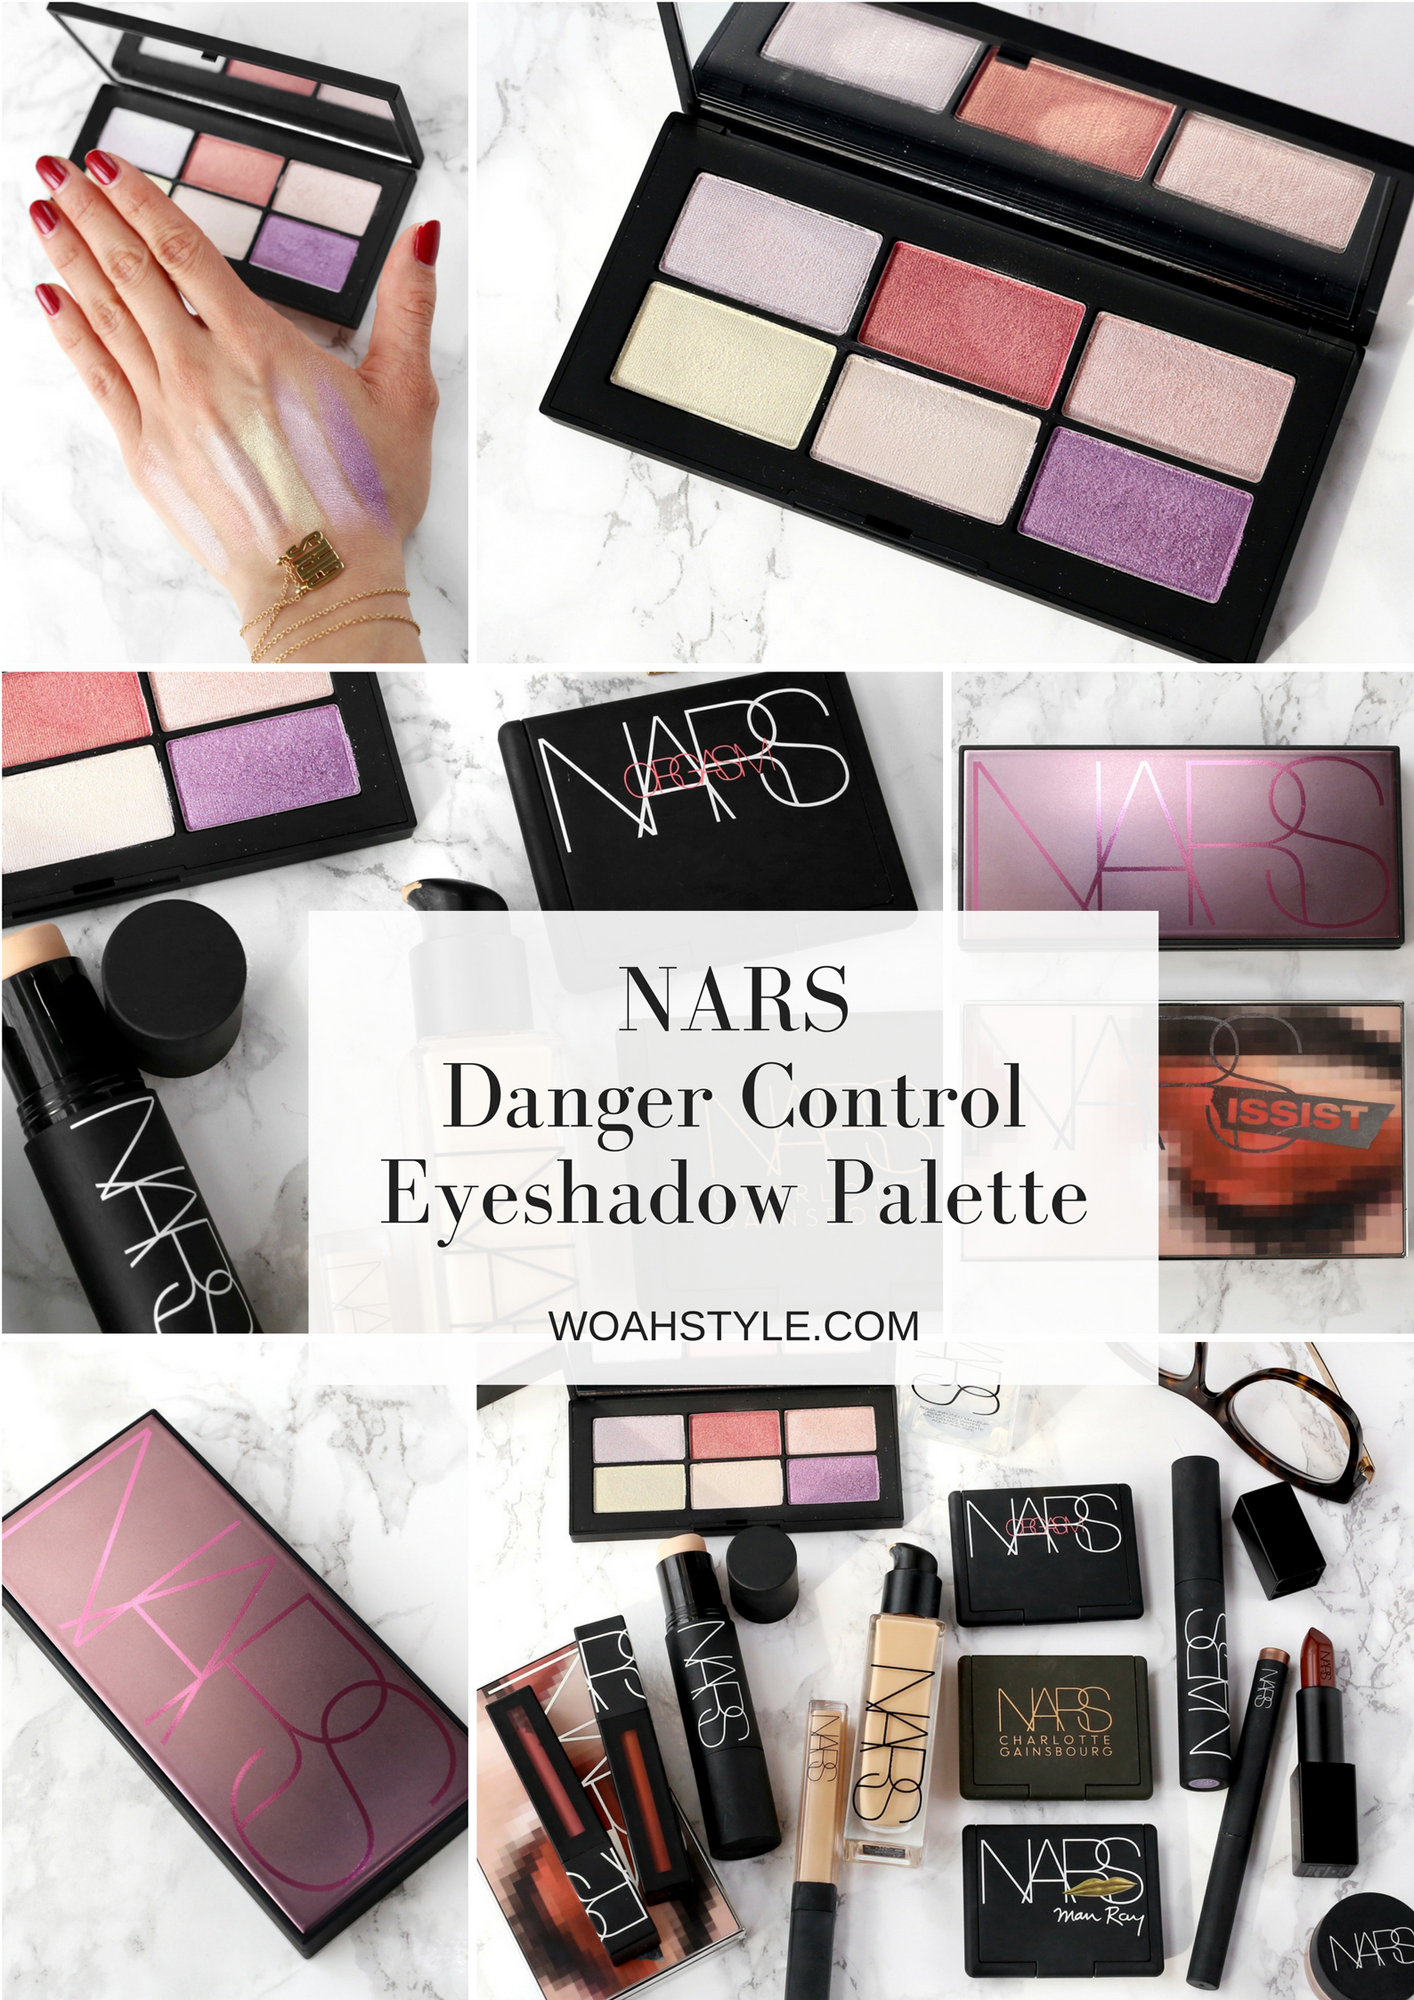 NARS Danger Control Eyeshadow Palette - review and swatches - Sephora Exclusive - woahstyle.com - toronto beauty blog - nathalie martin 2.jpg